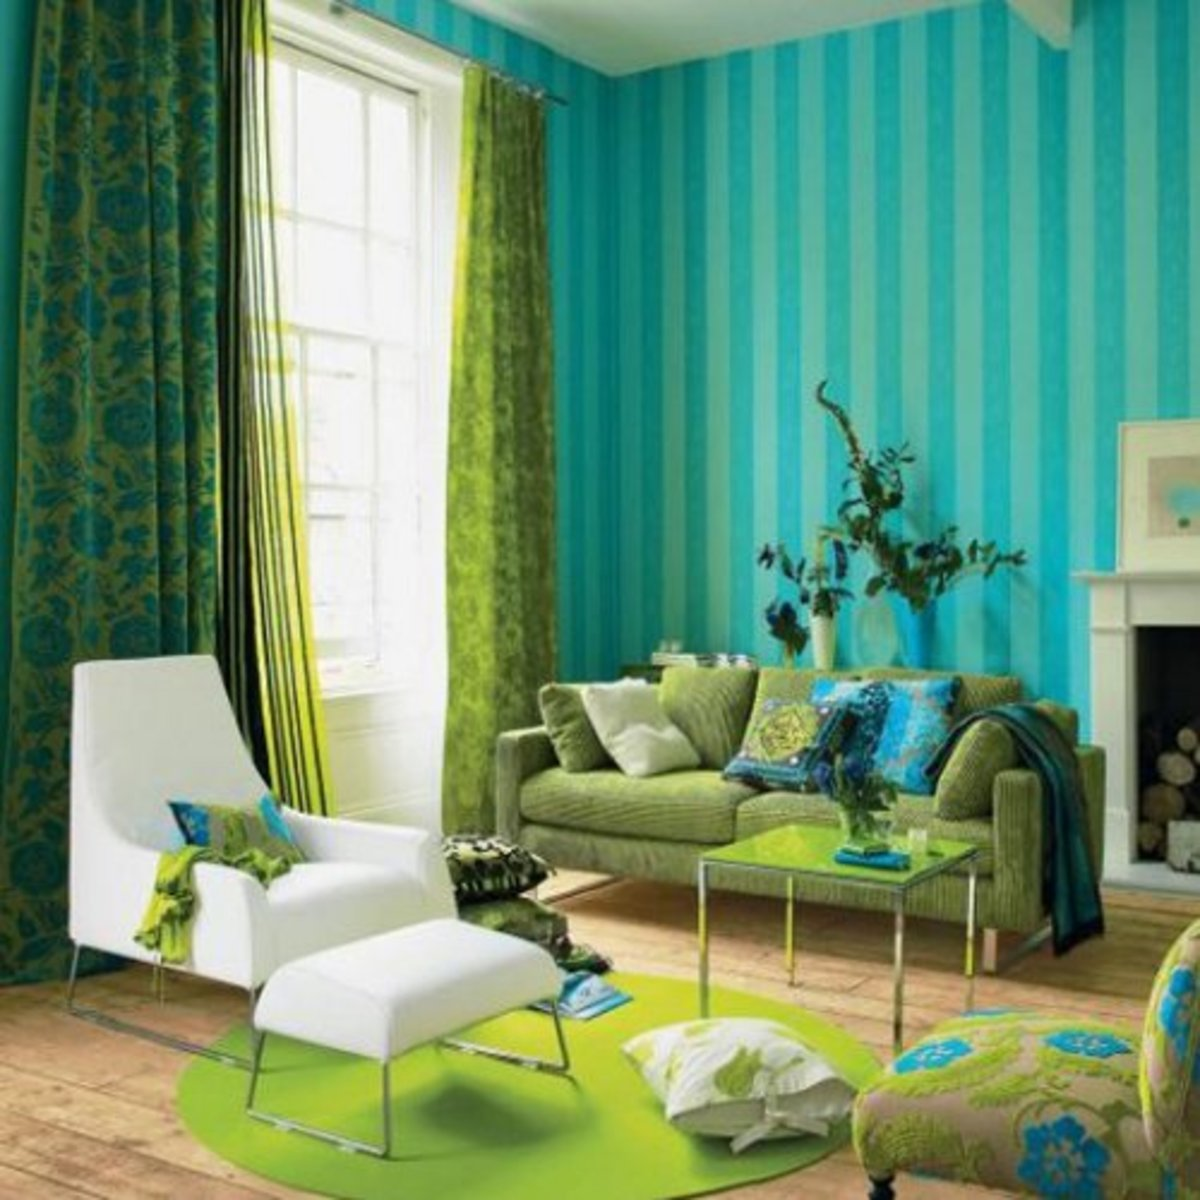 Lime Green & Turquoise